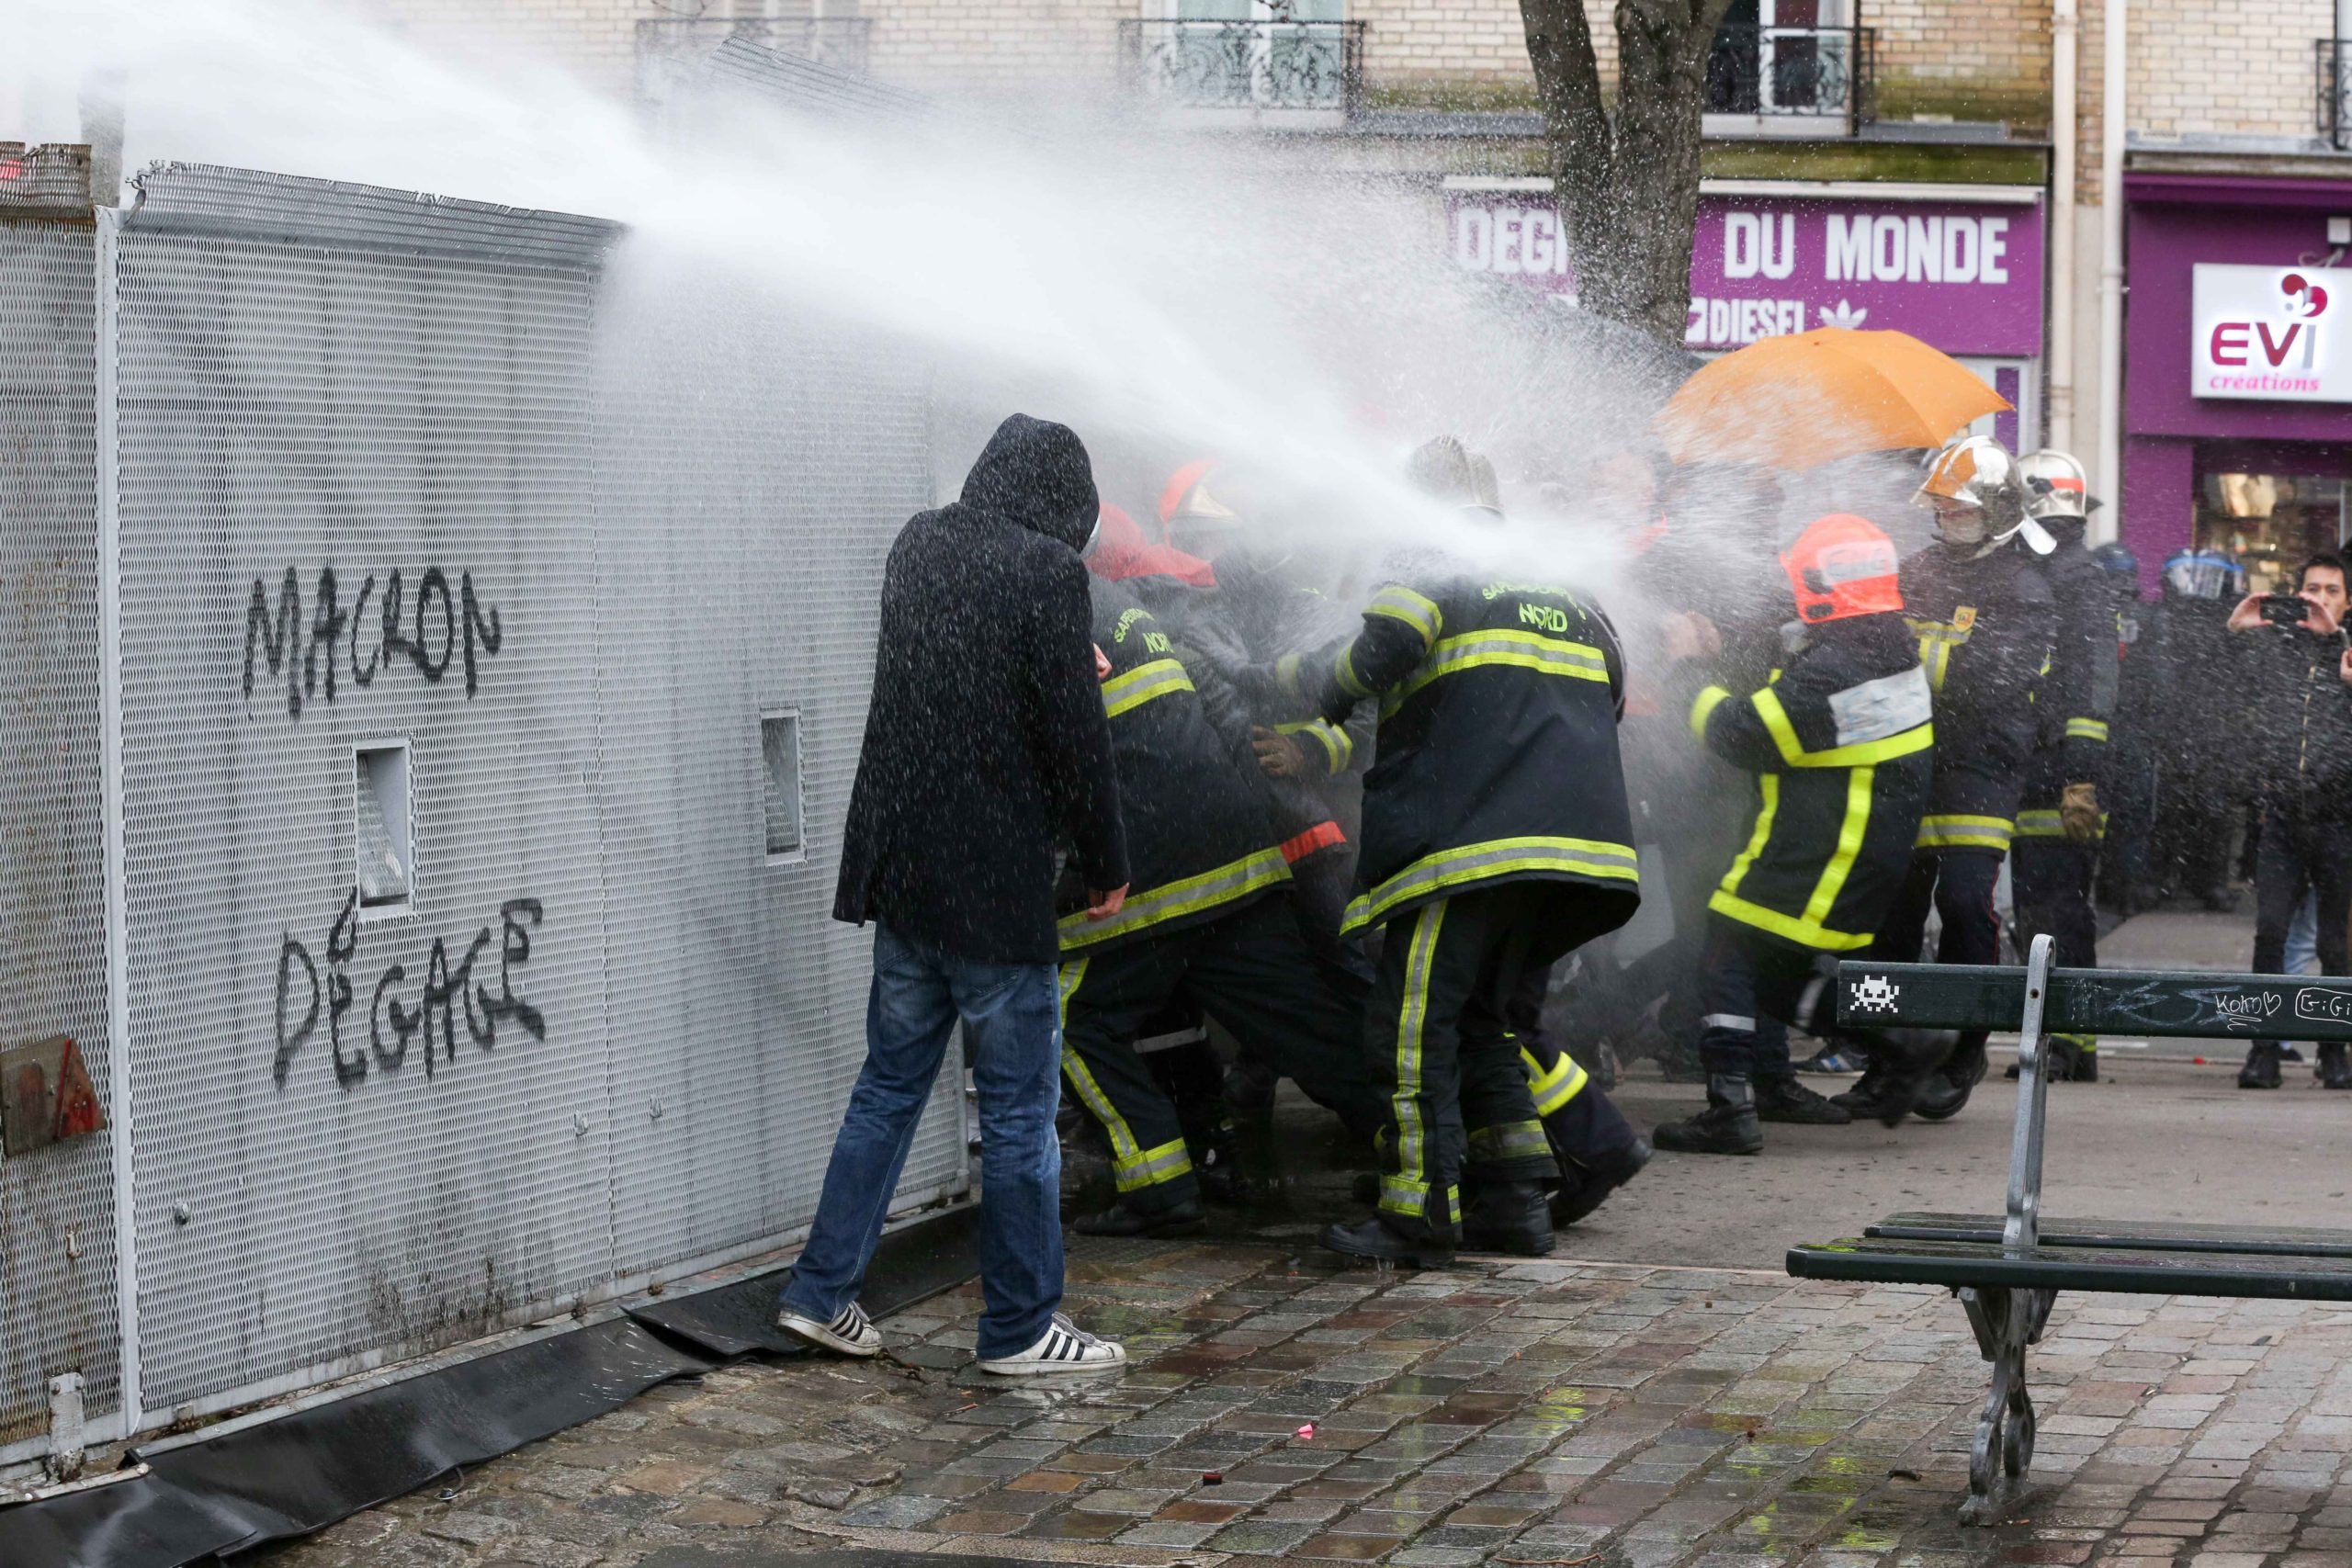 Firefighters try to open a path in a riot barricade and were repelled by water canons during a demonstration to protest against French government's plan to overhaul the country's retirement system in Paris, on January 28, 2020.